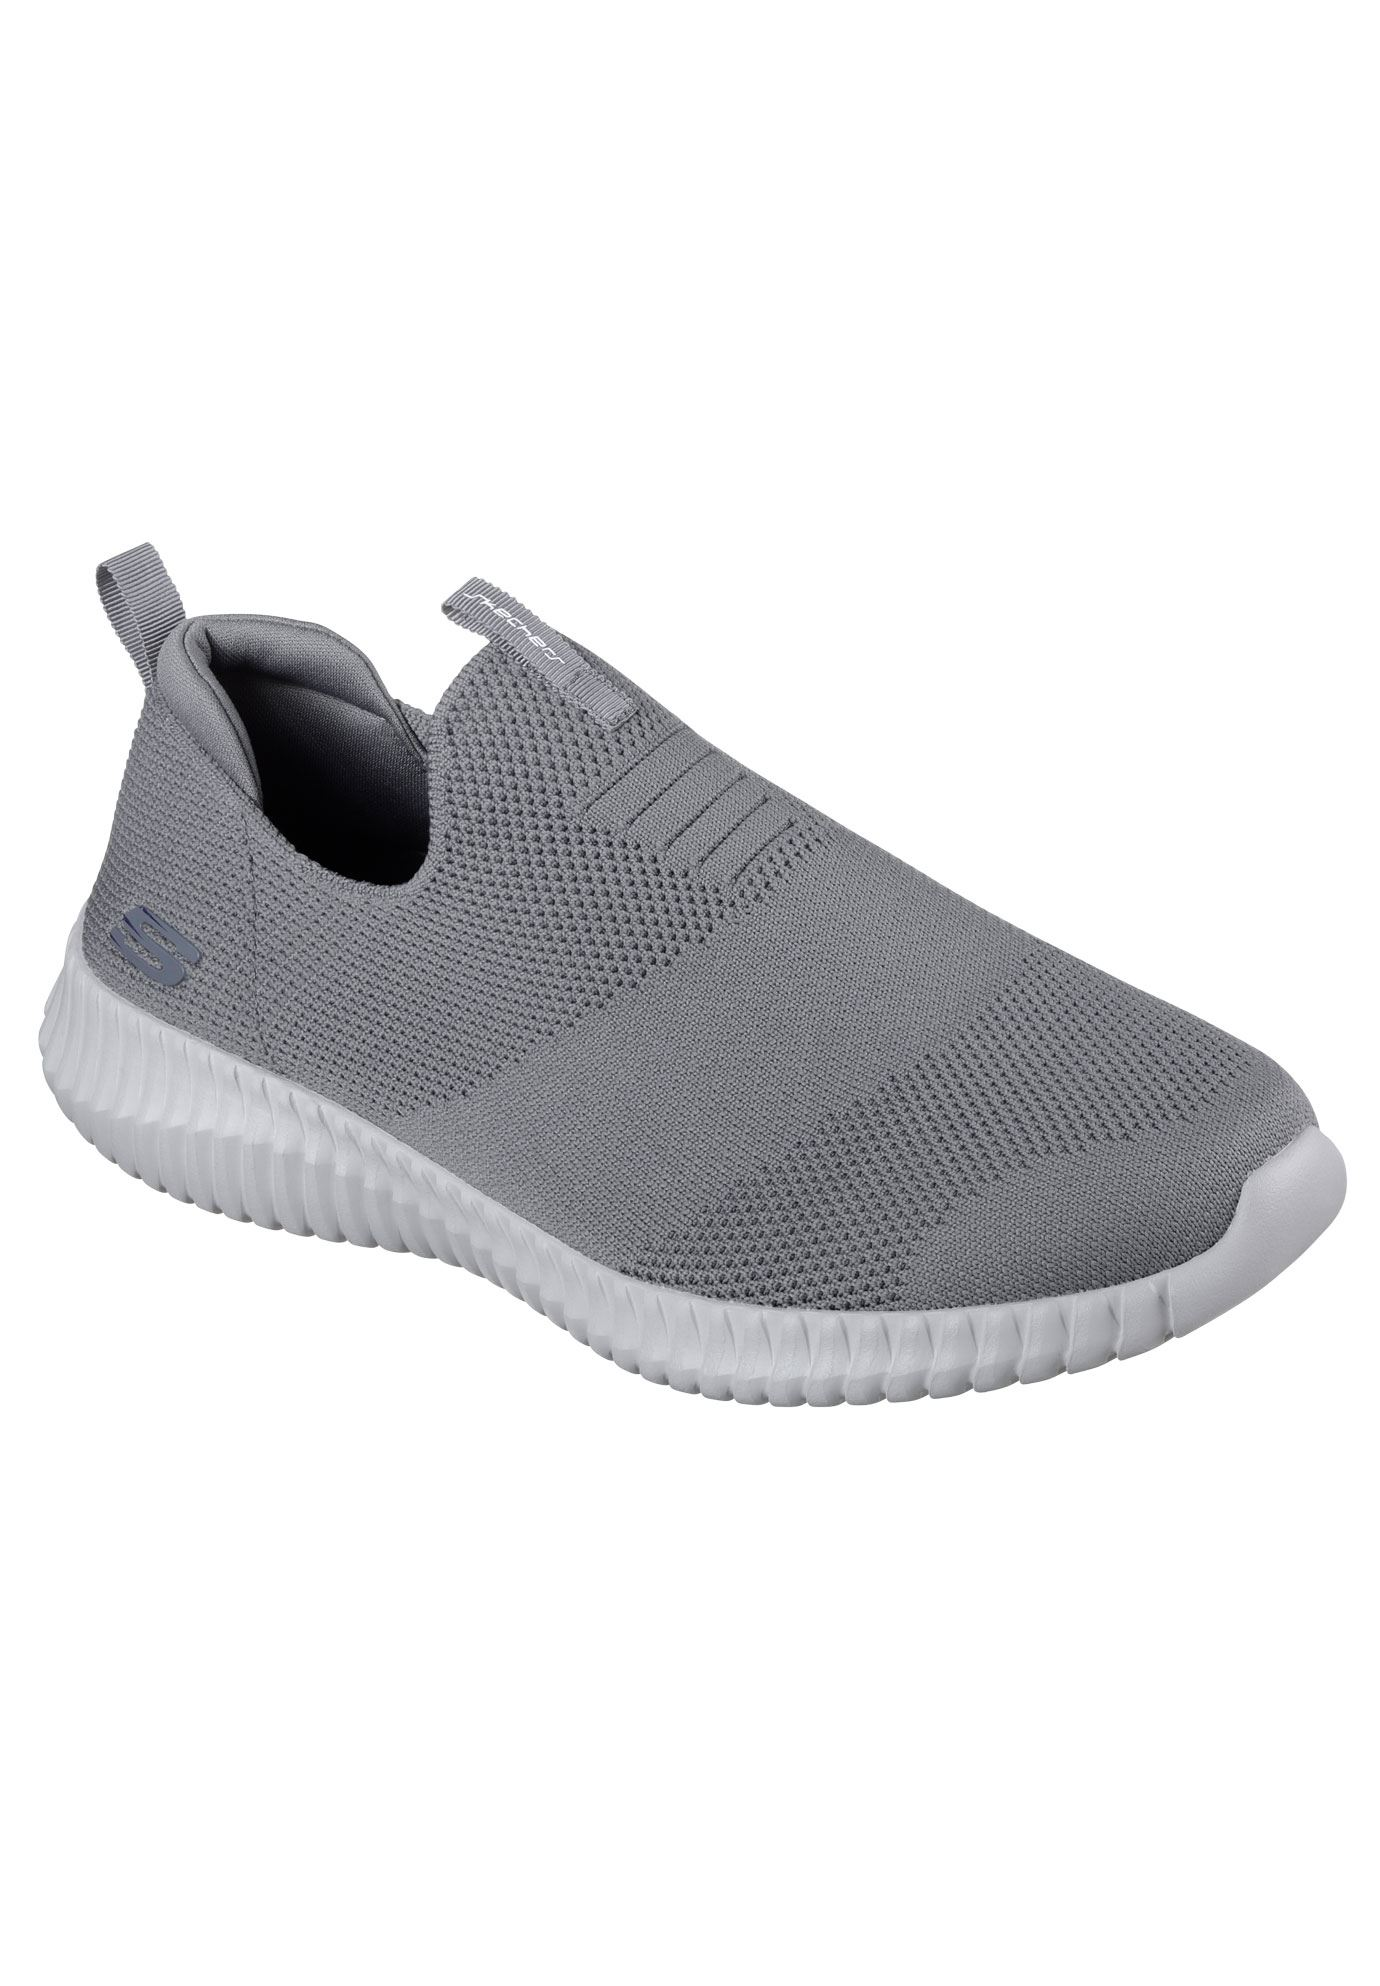 Elite Flex - Wasick Slip-Ons by SKECHERS®,